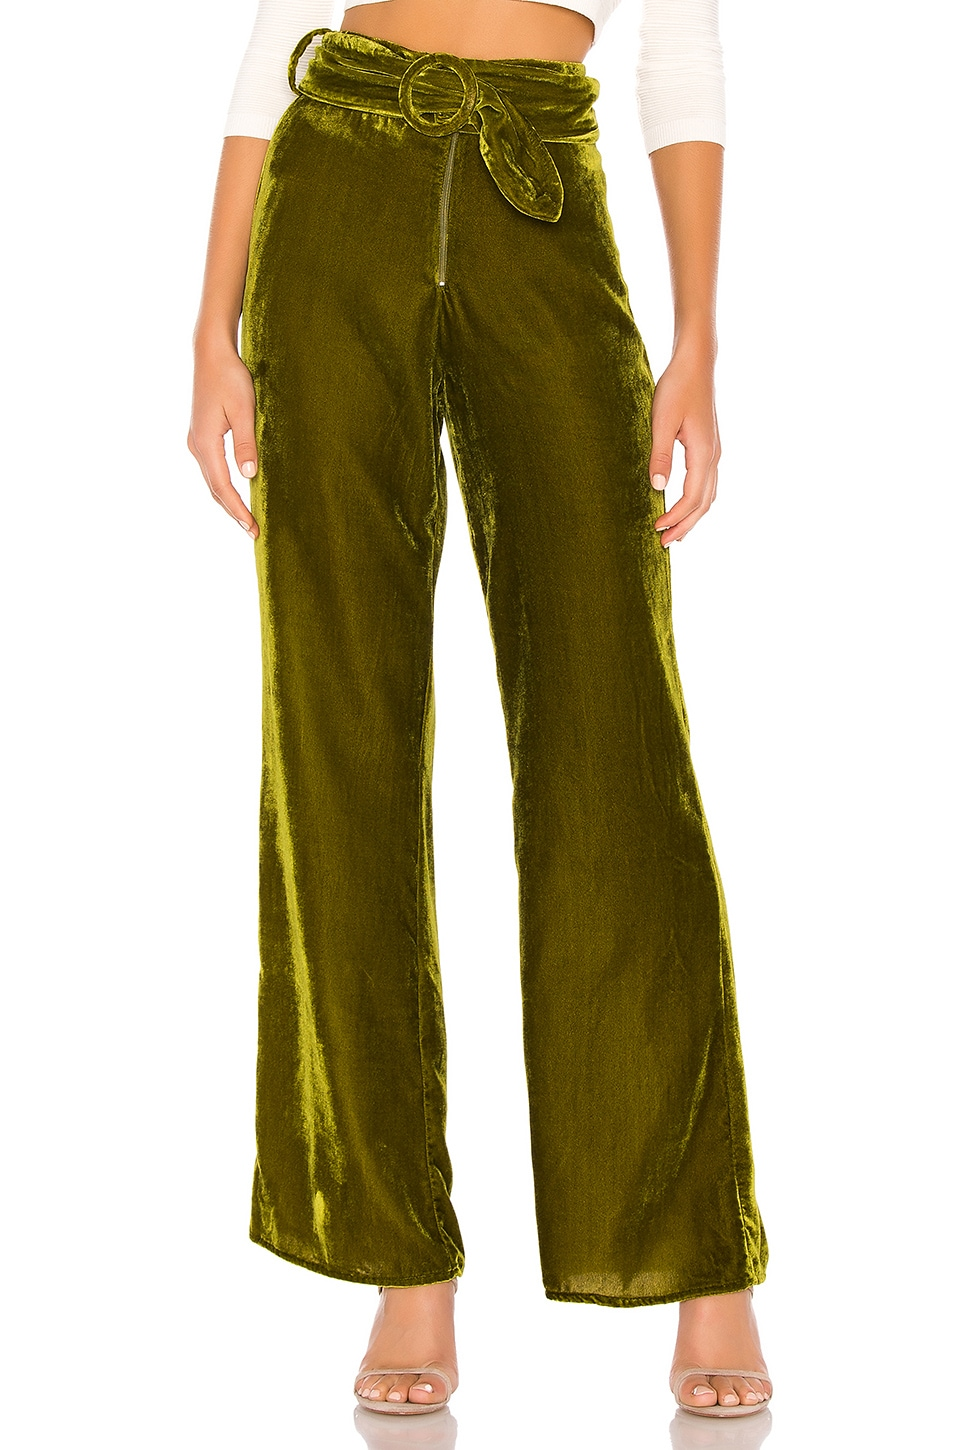 Tularosa Ruth Belted Pant in Moss Green